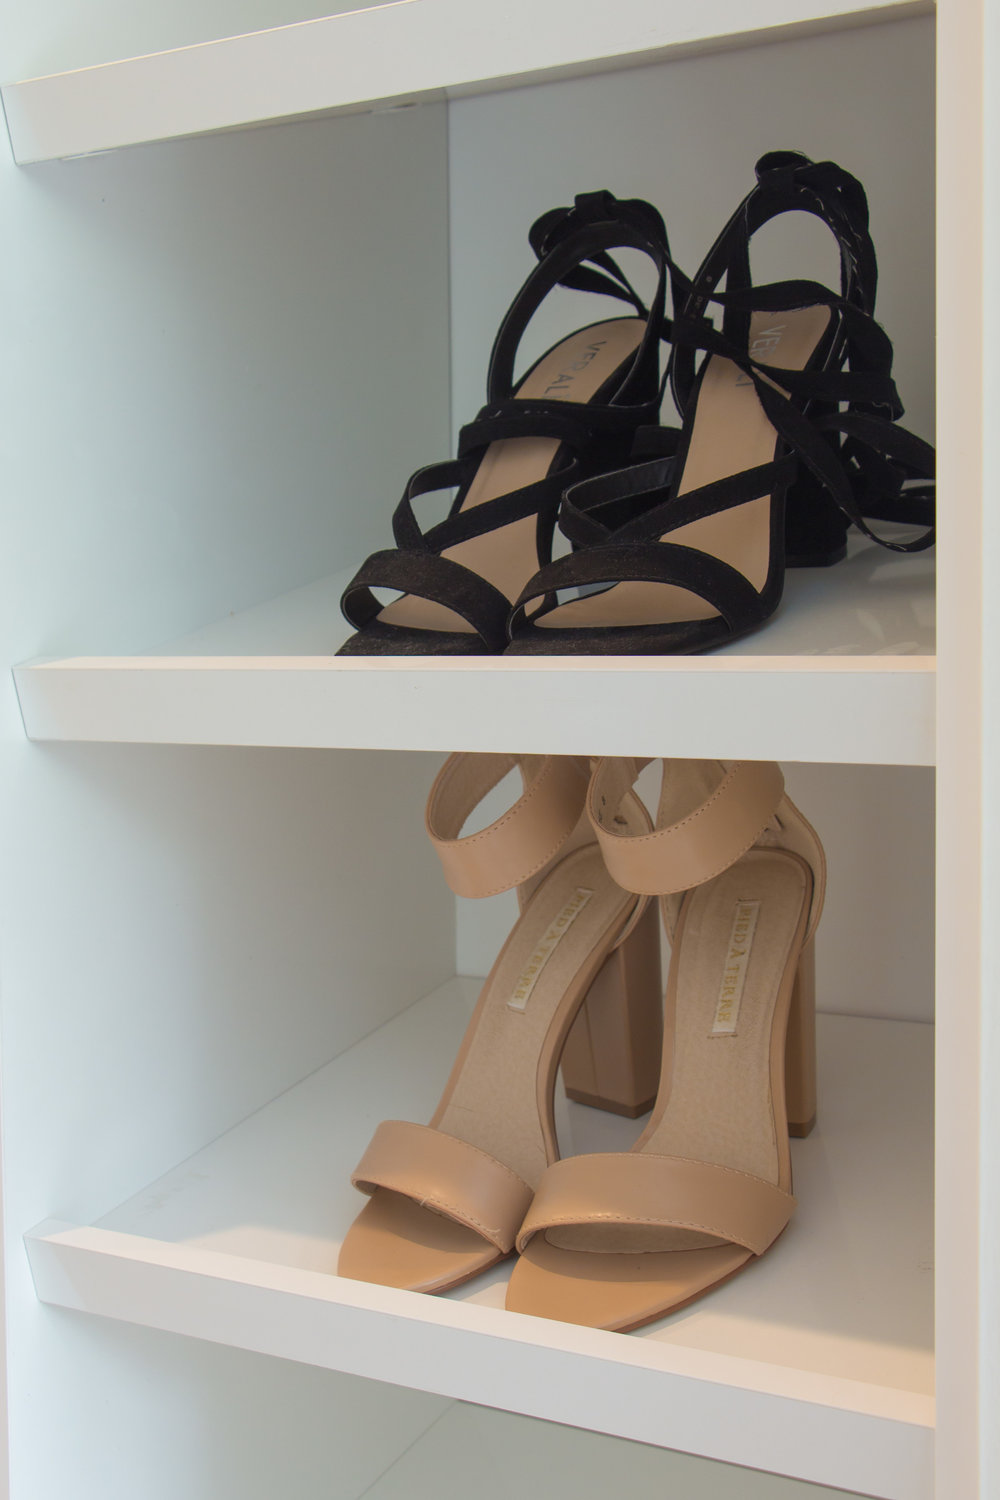 Angled shoe shelves